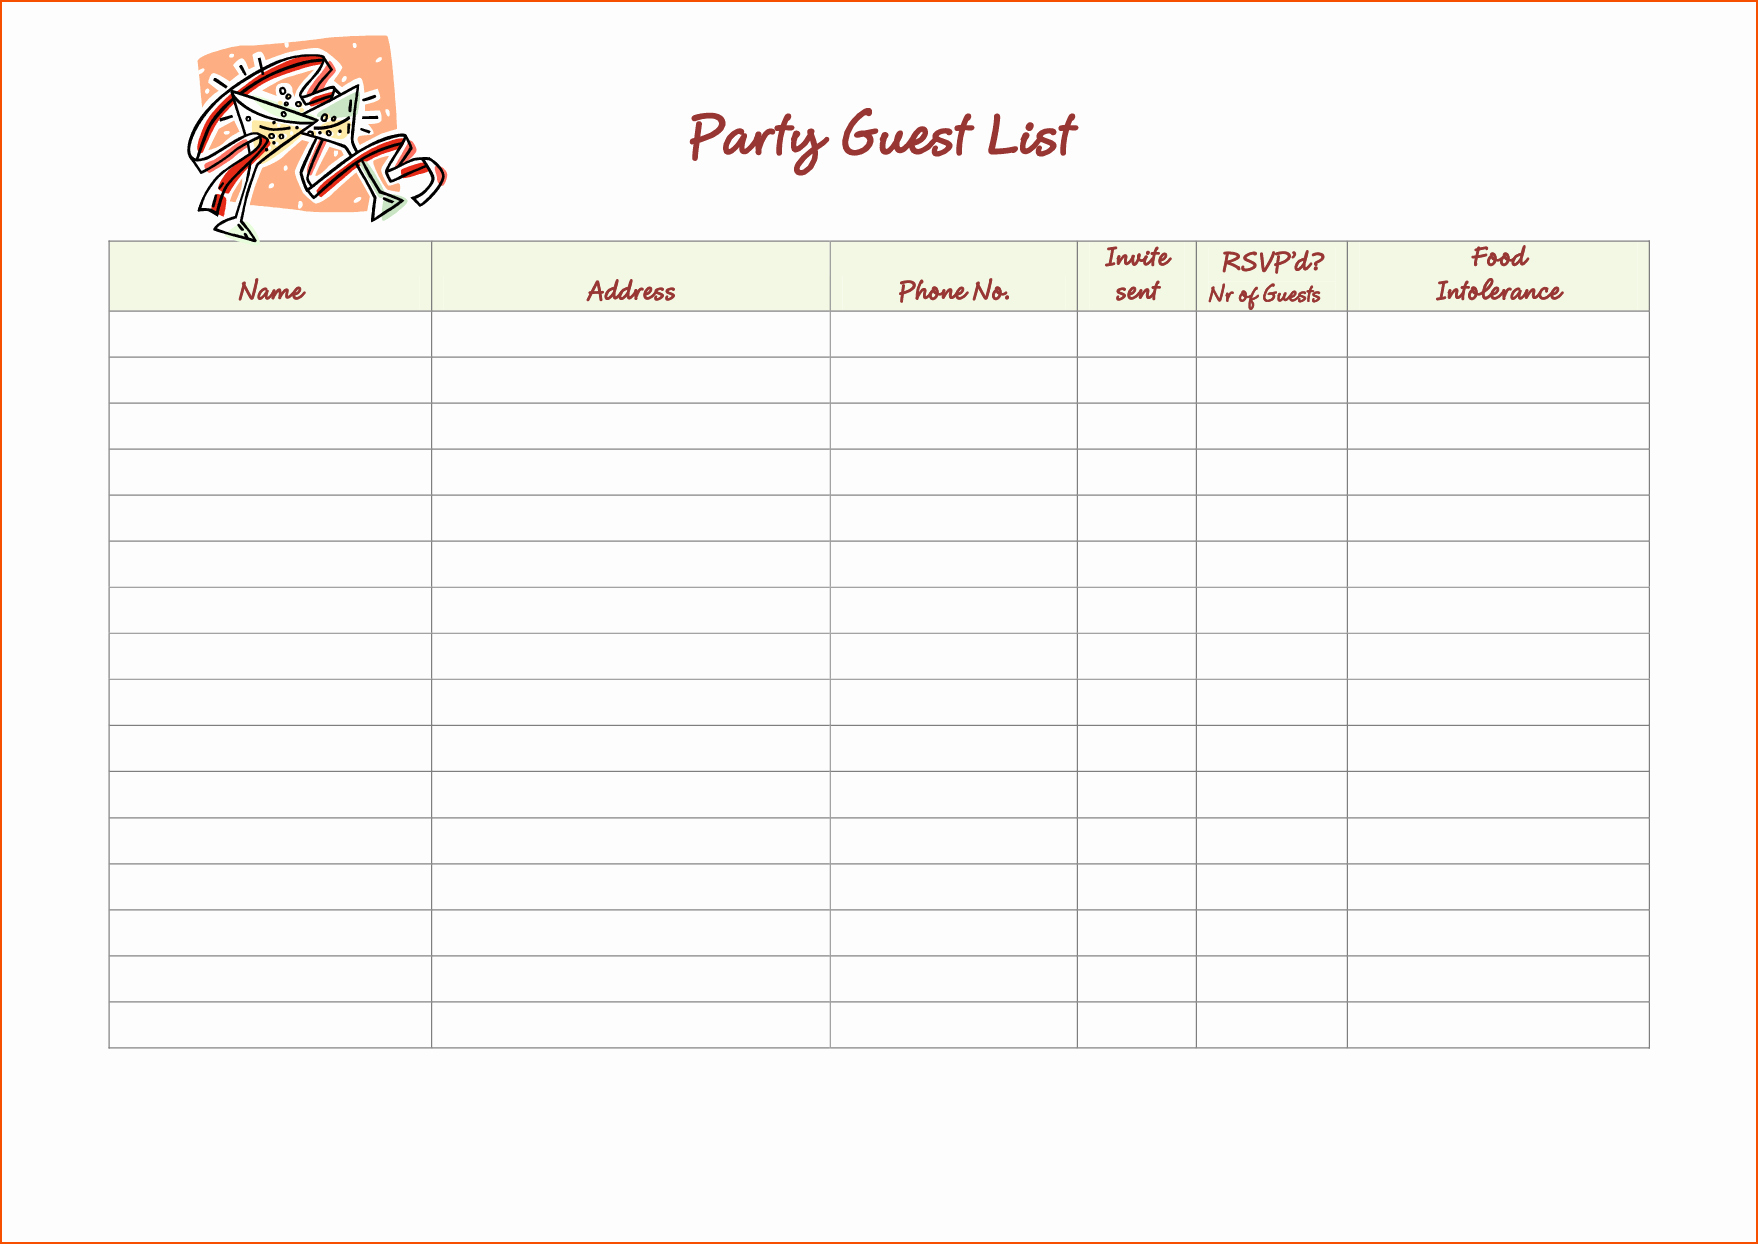 Excel Party Guest List Template Awesome 5 Party Guest List Template Bookletemplate